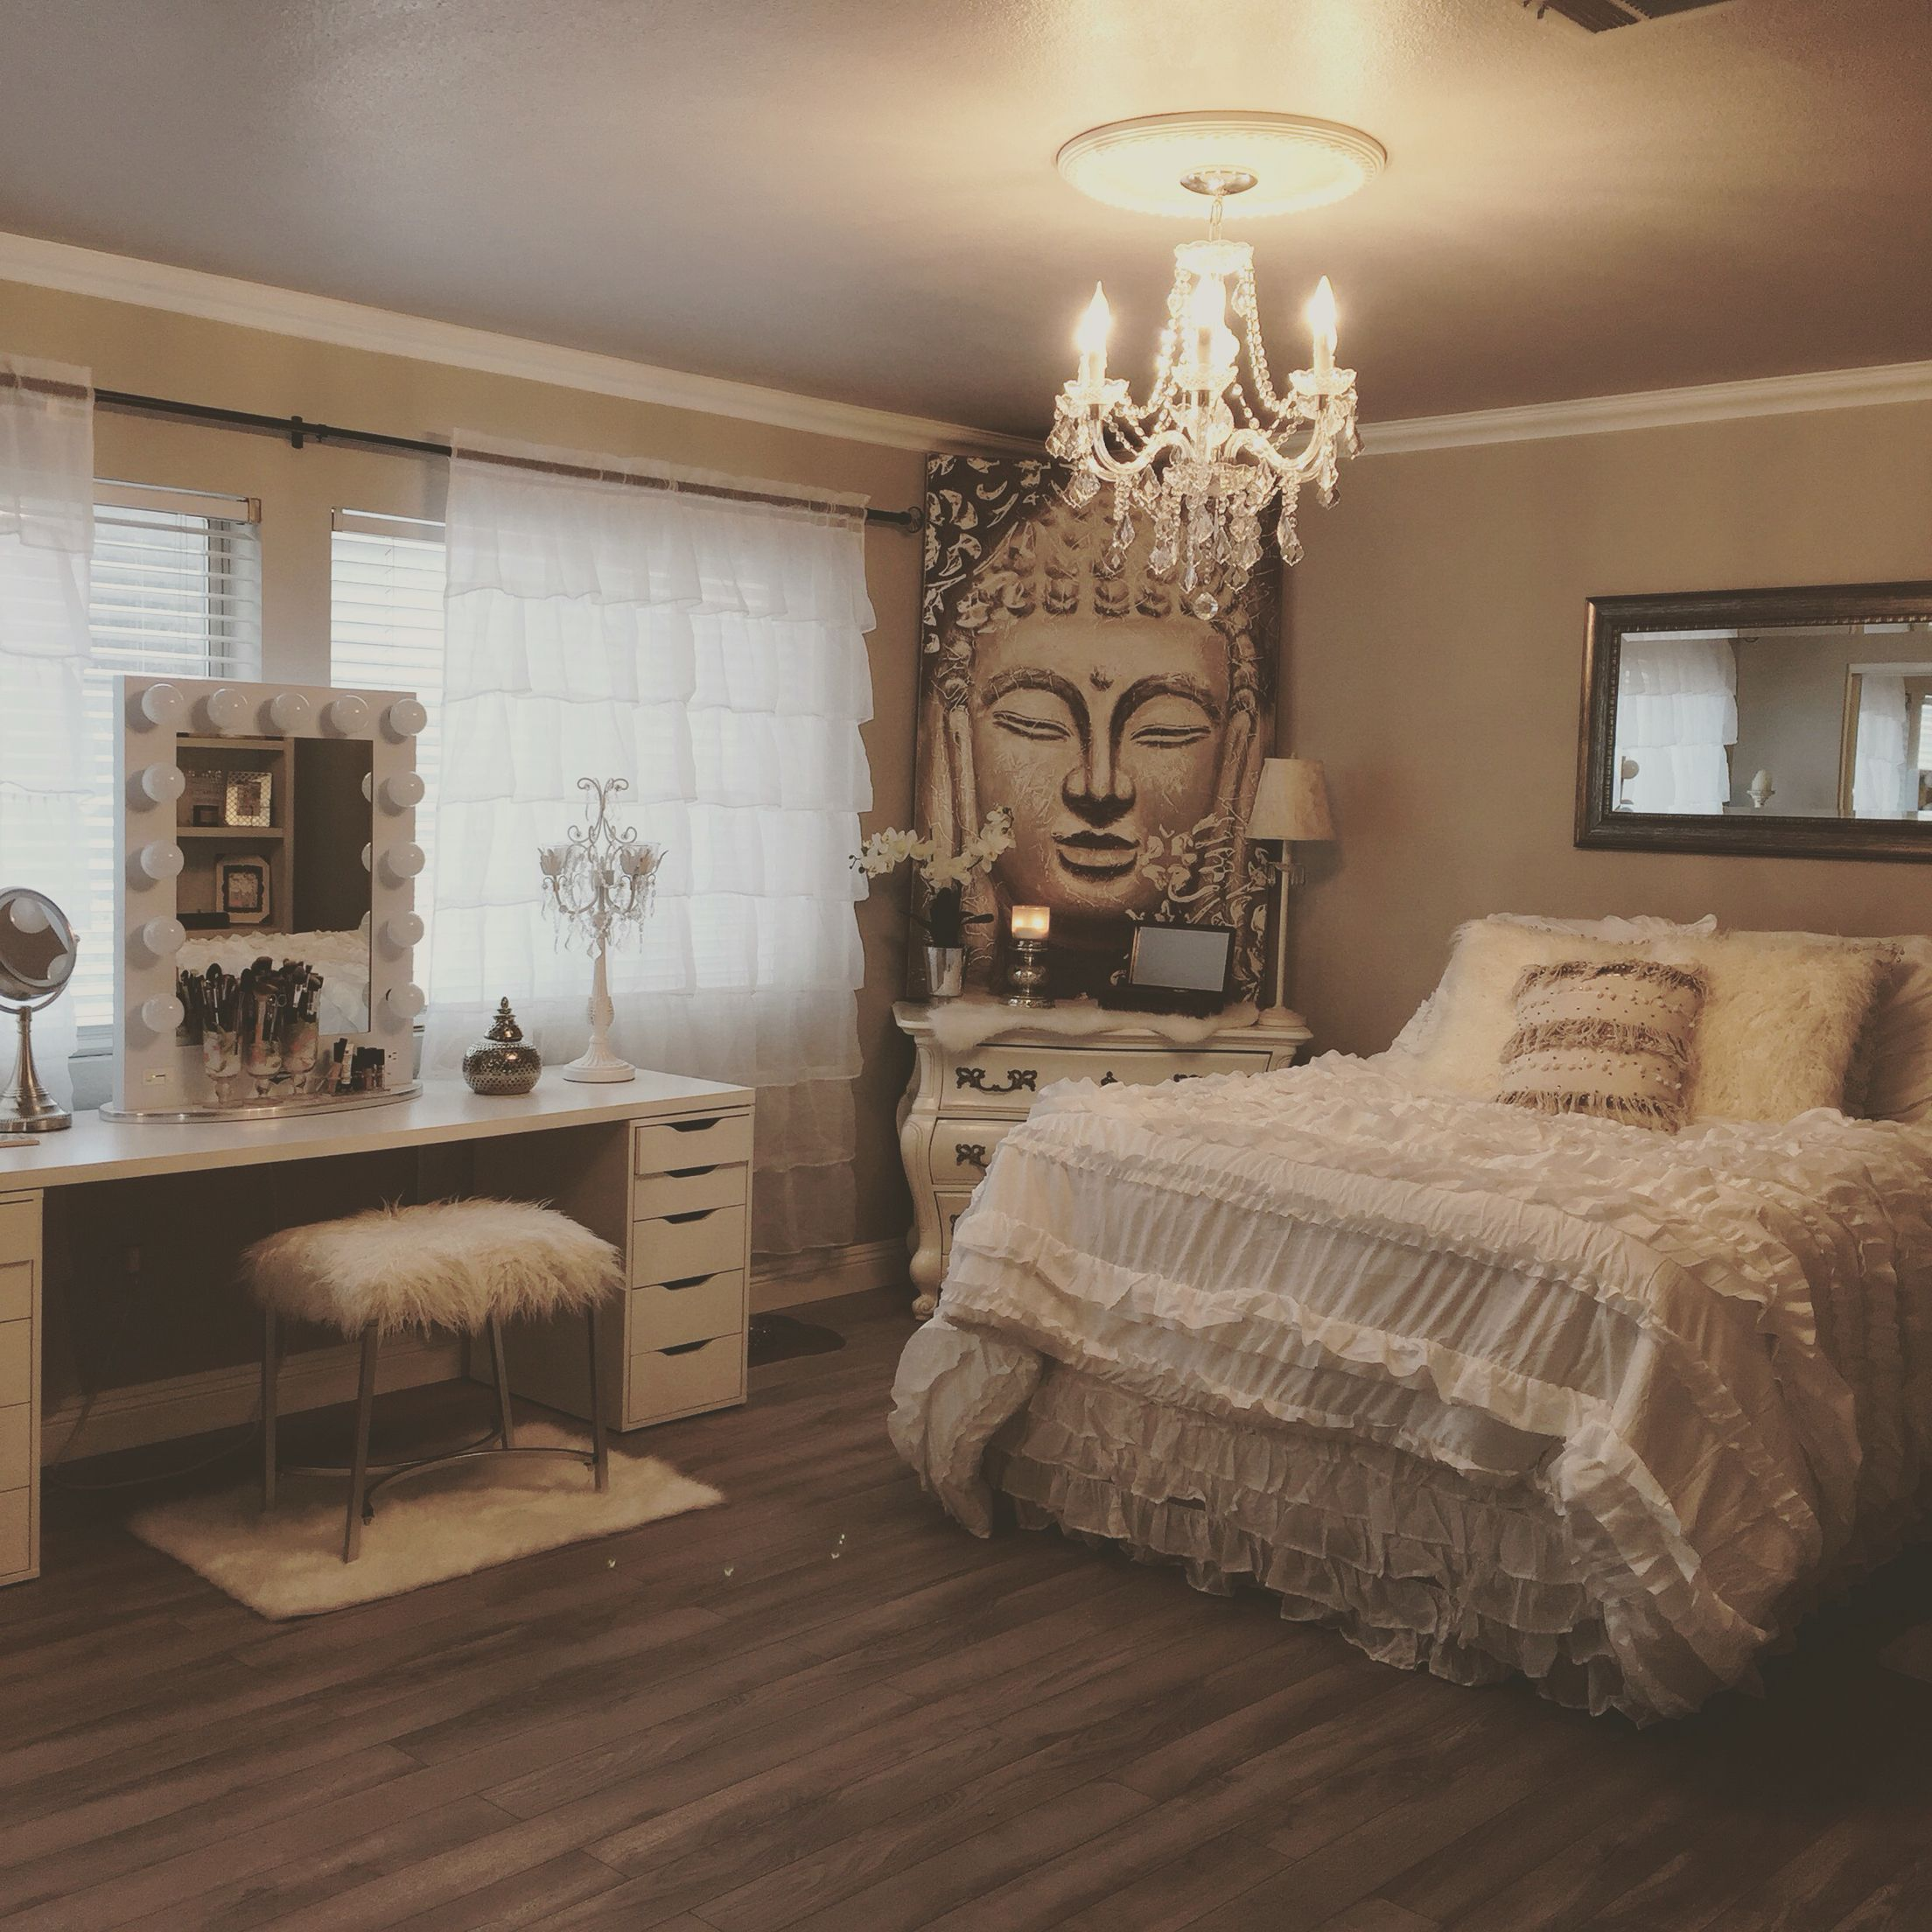 Room Decor Bedroom Decor Und: Shabby Chic Meets Zen Glam